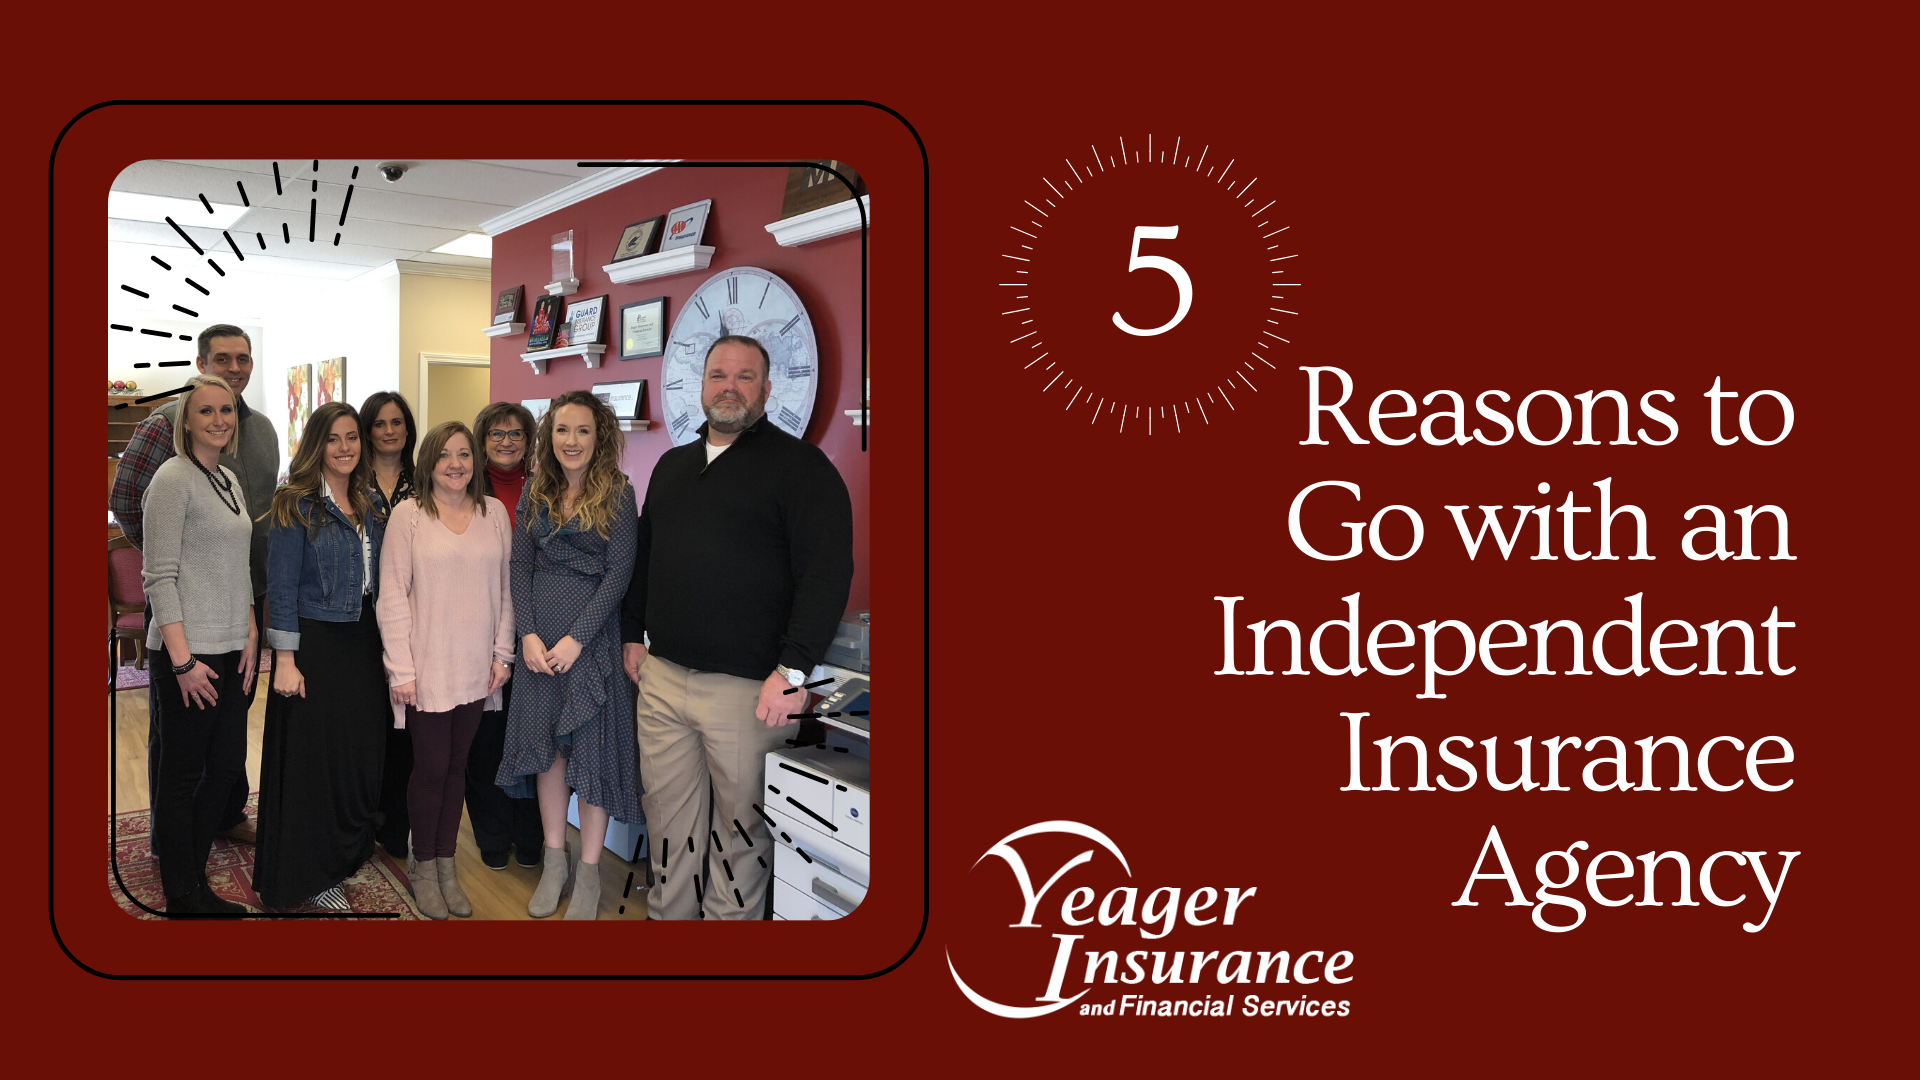 Top 5 Reason to Go with an Independent Insurance Agency